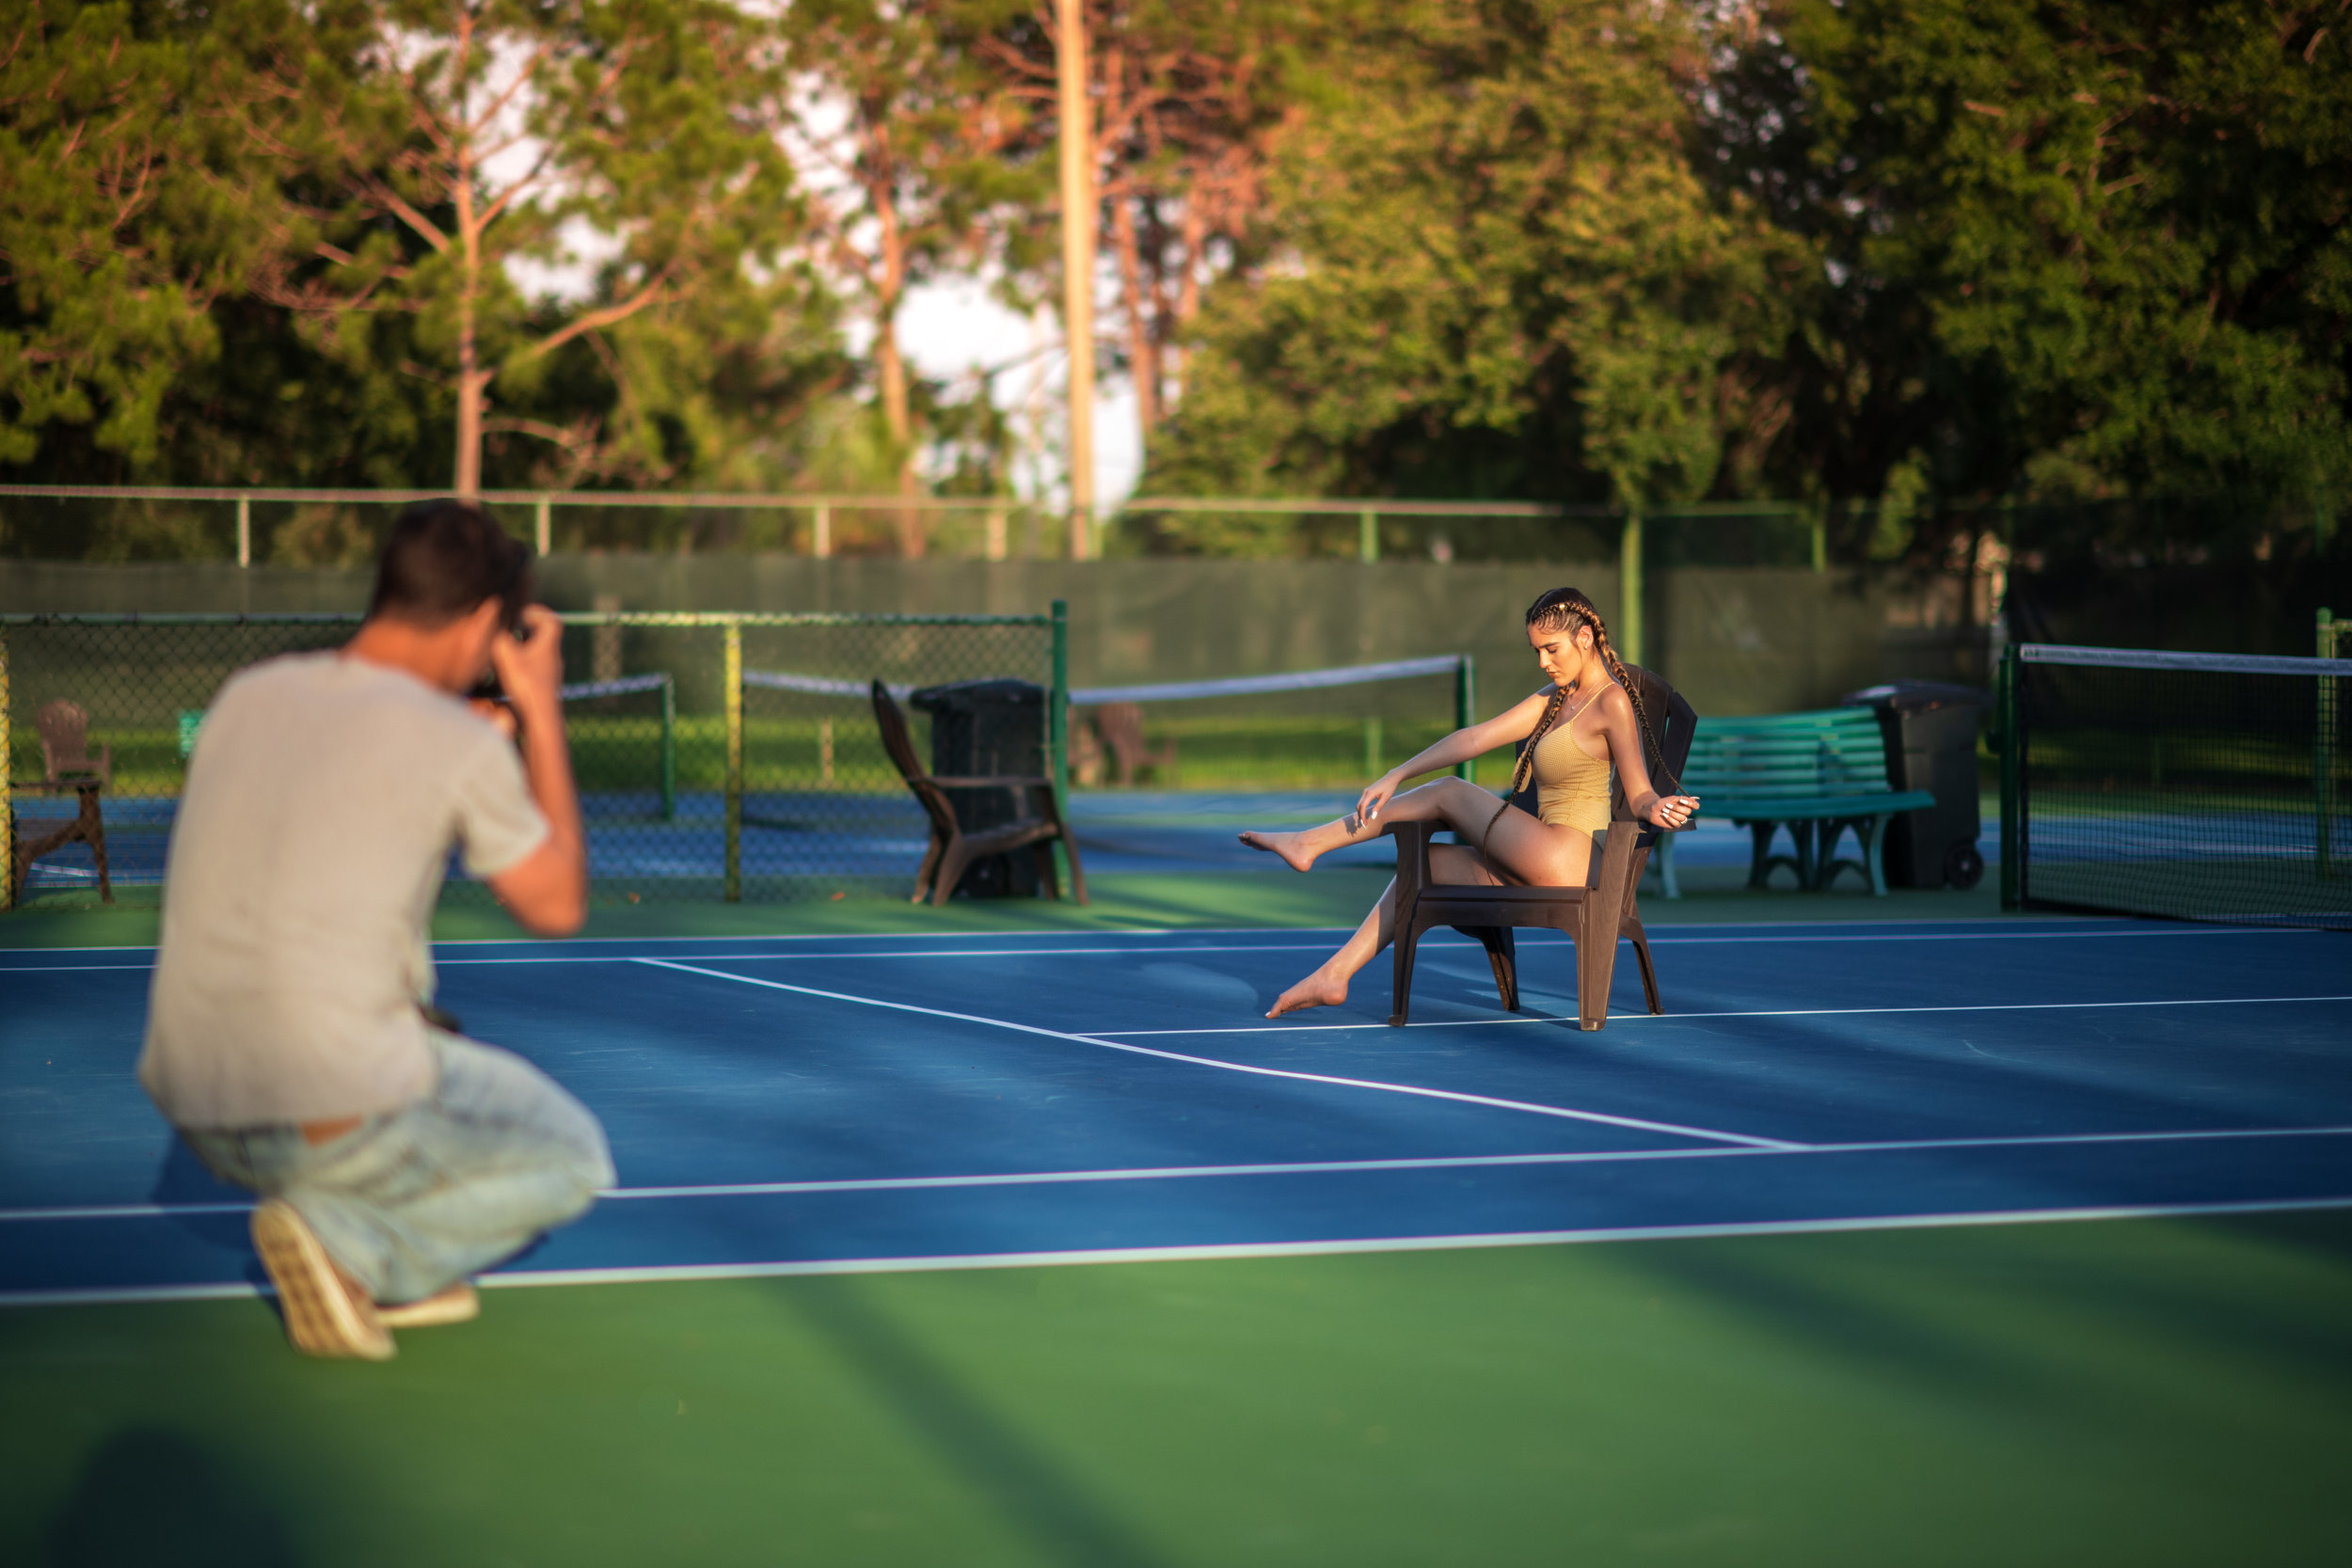 Tennis Shoot BTS (Tyler) (1 of 1).jpg